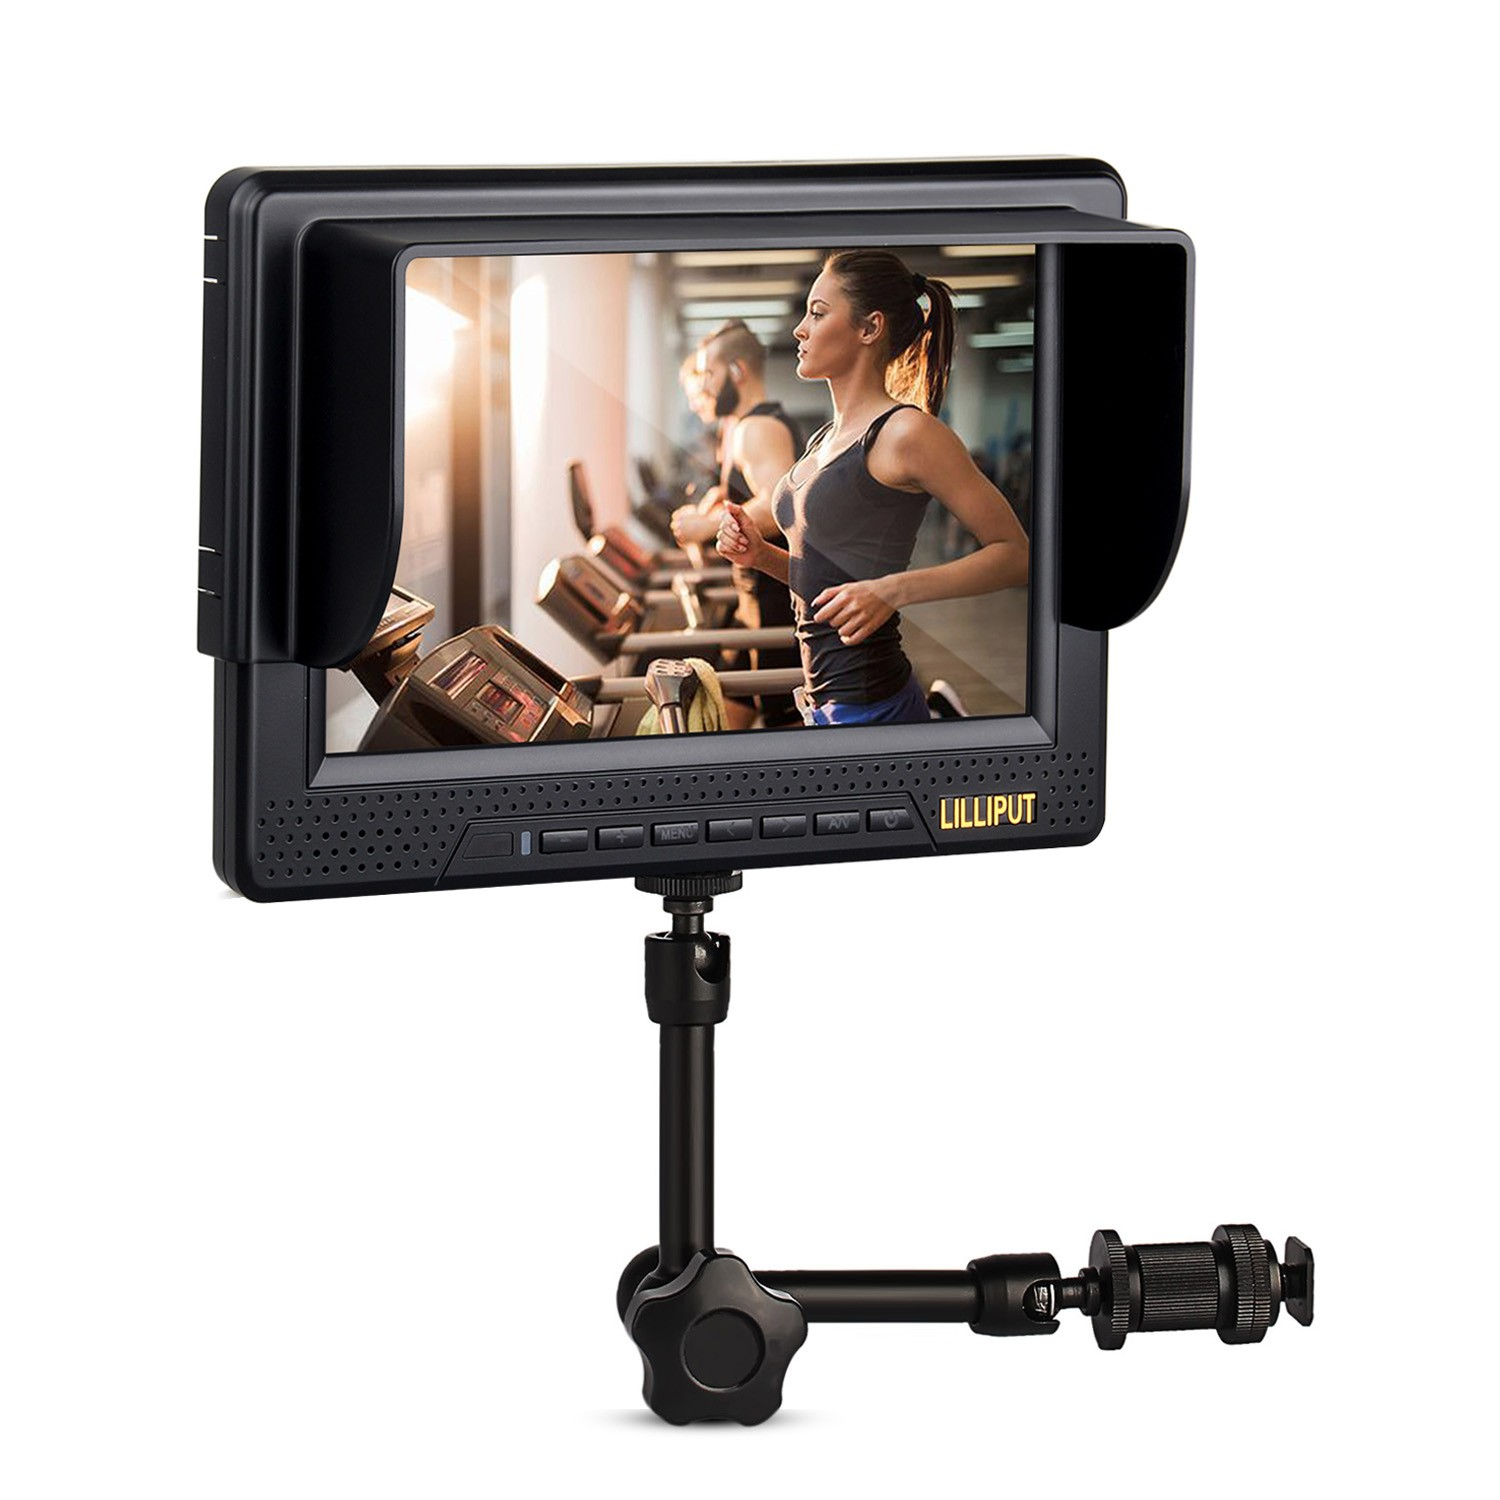 7 inch Lilliput 668GL 70NP/HY LCD Video Camera Monitor 1920x1080 HDMI YPbPr AV Input + 7 Inch Magic Arm